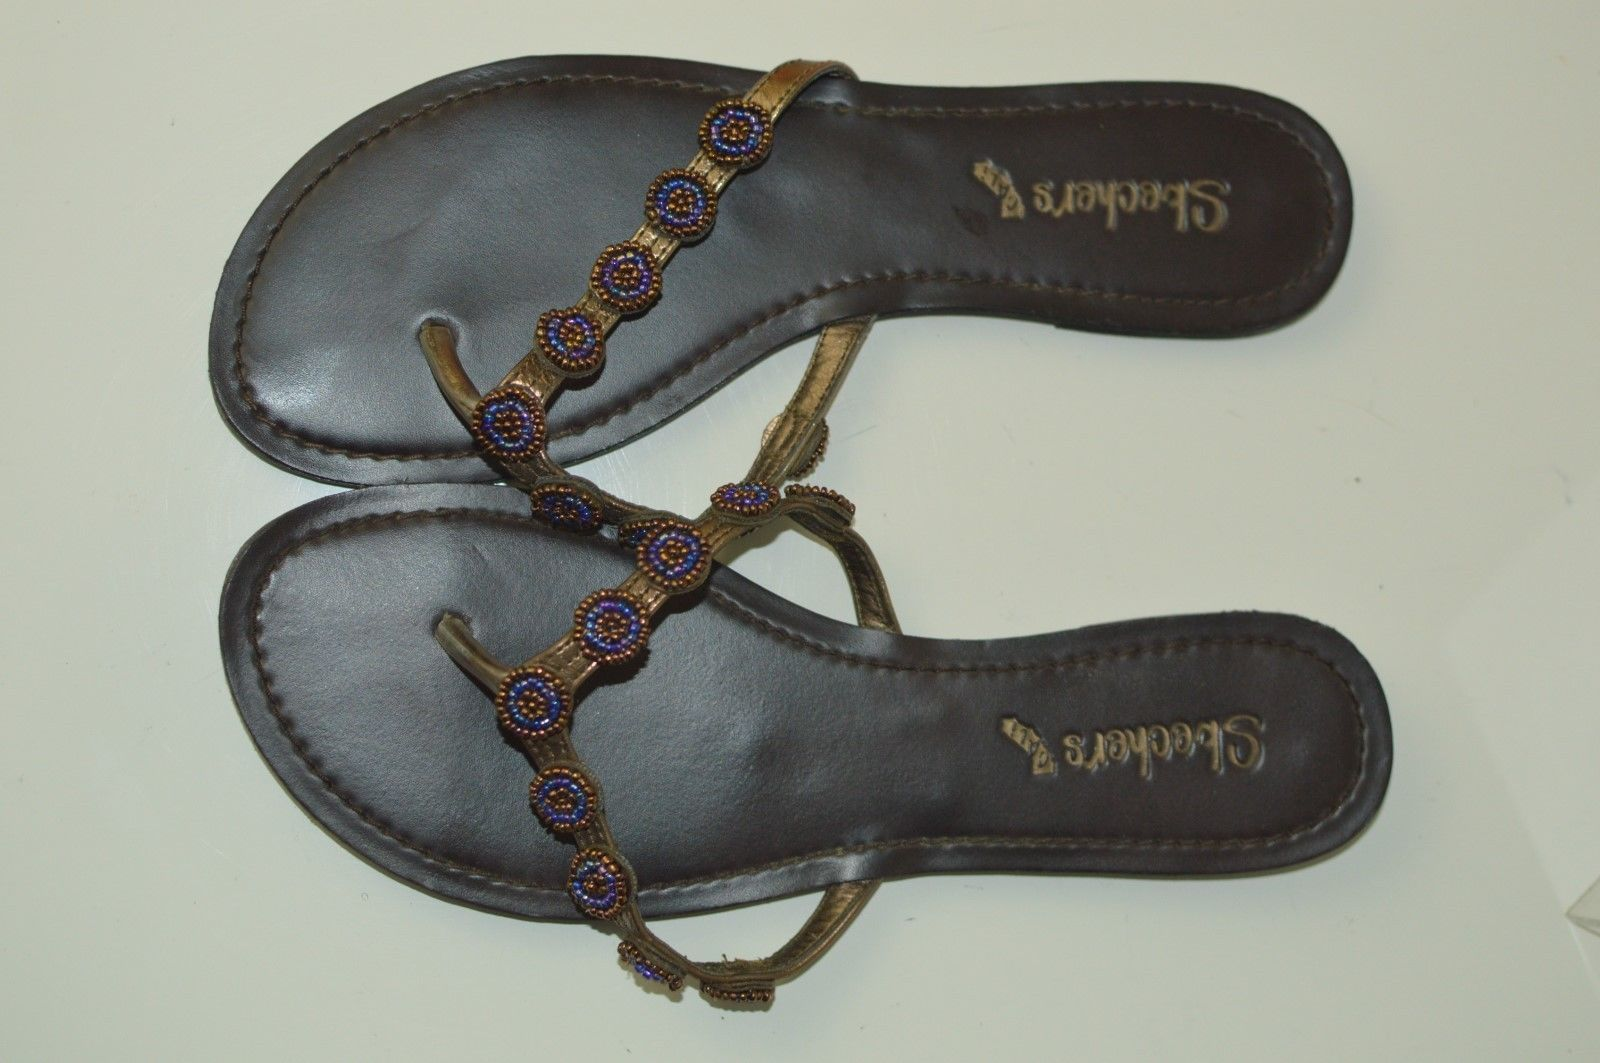 SKECHER'S CALI LEATHER BROWN BEADED THONG SANDALS WOMEN'S SHOES SIZE 8